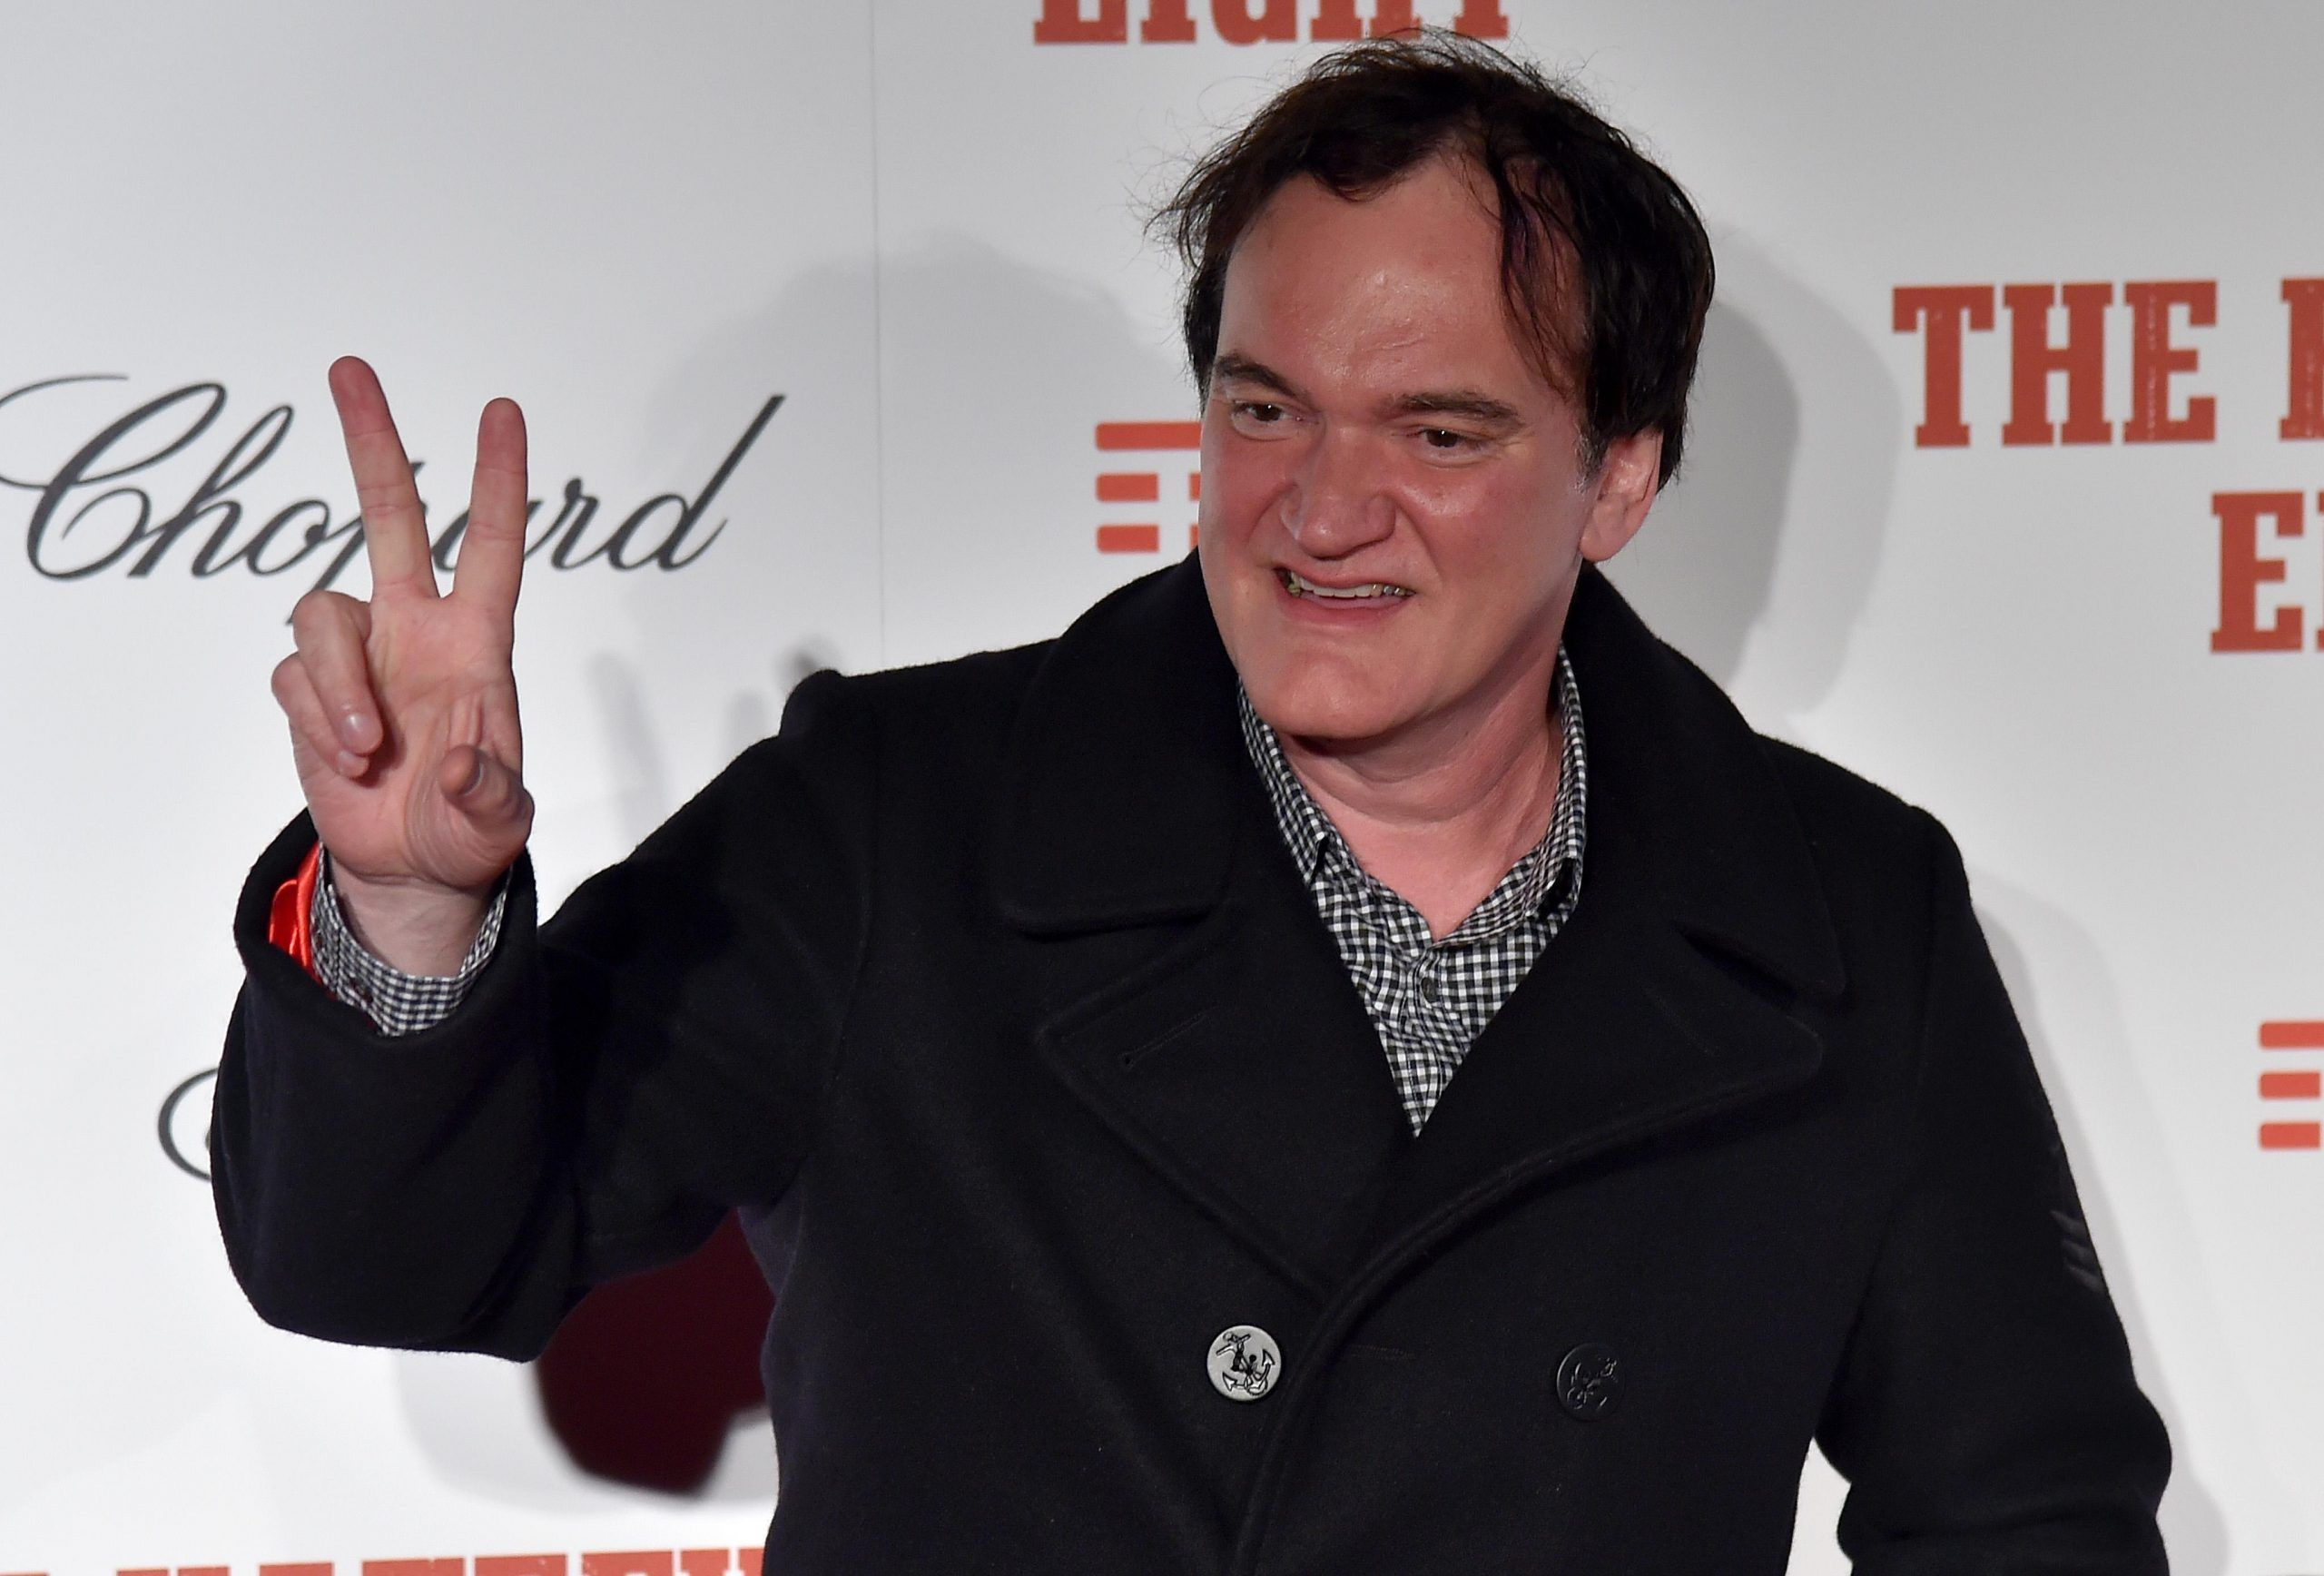 Italian premiere of 'The Hateful Eight' in Rome